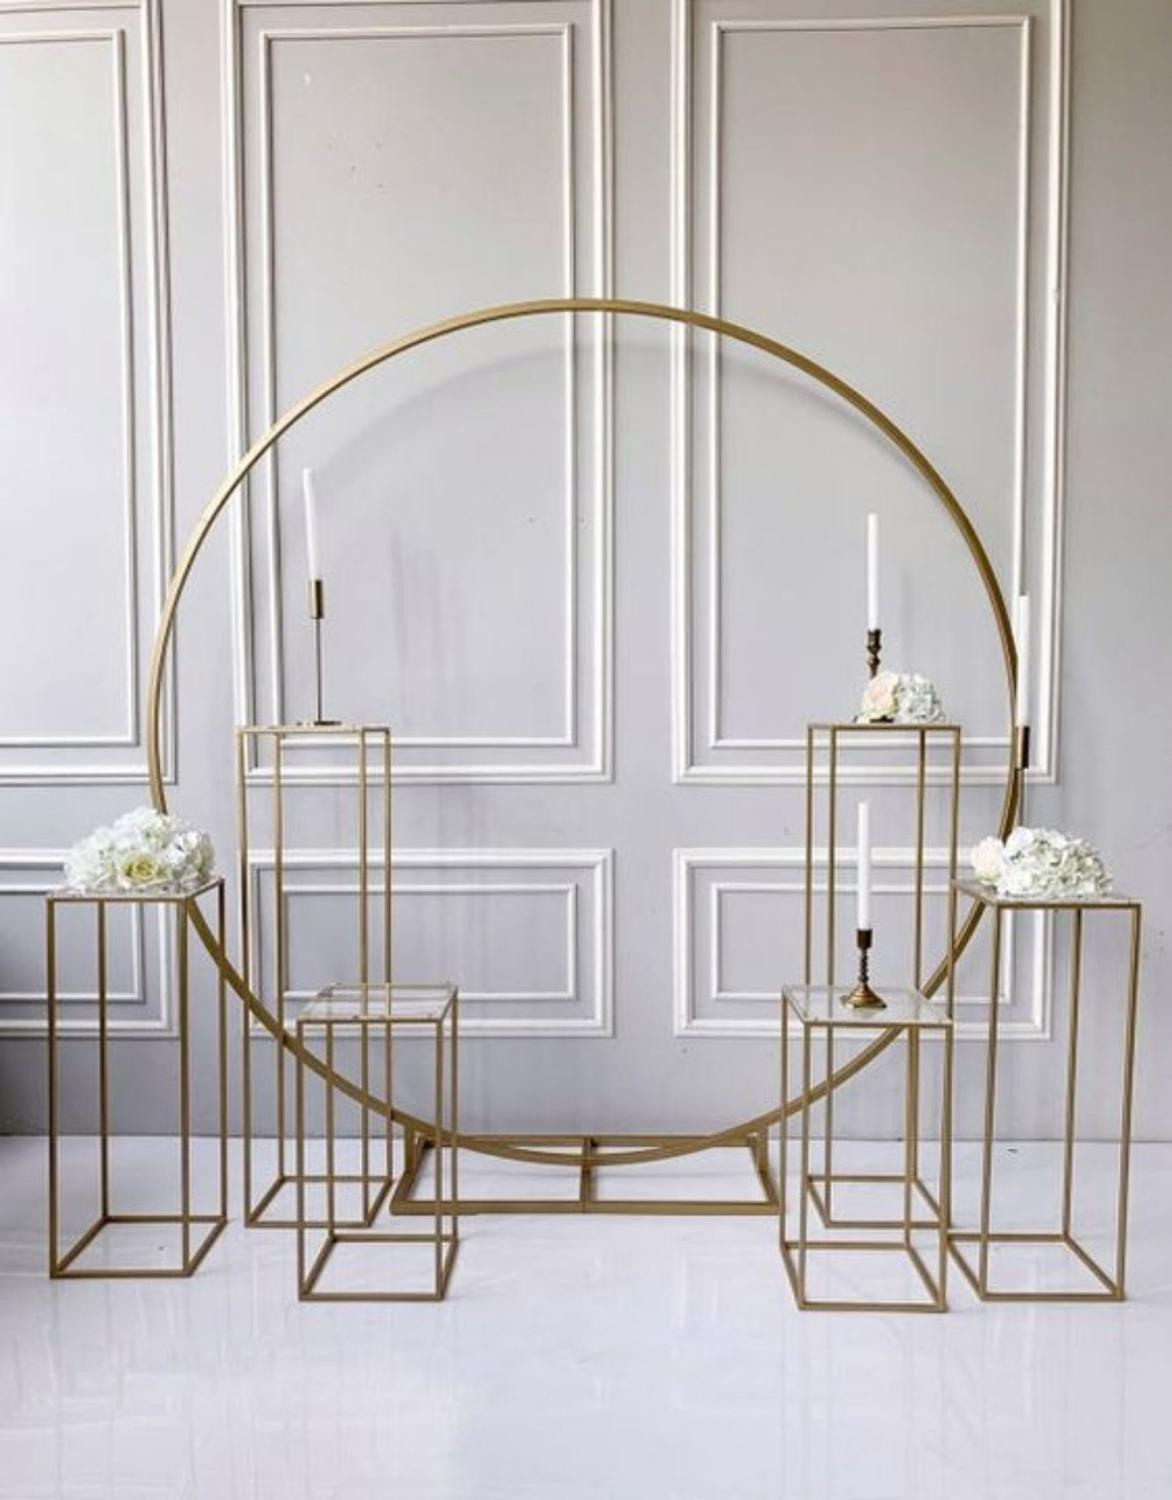 grand-event  geometric props backdrops arch flower outdoor lawn flowers door balloons rack iron circle Wedding arch sash holders